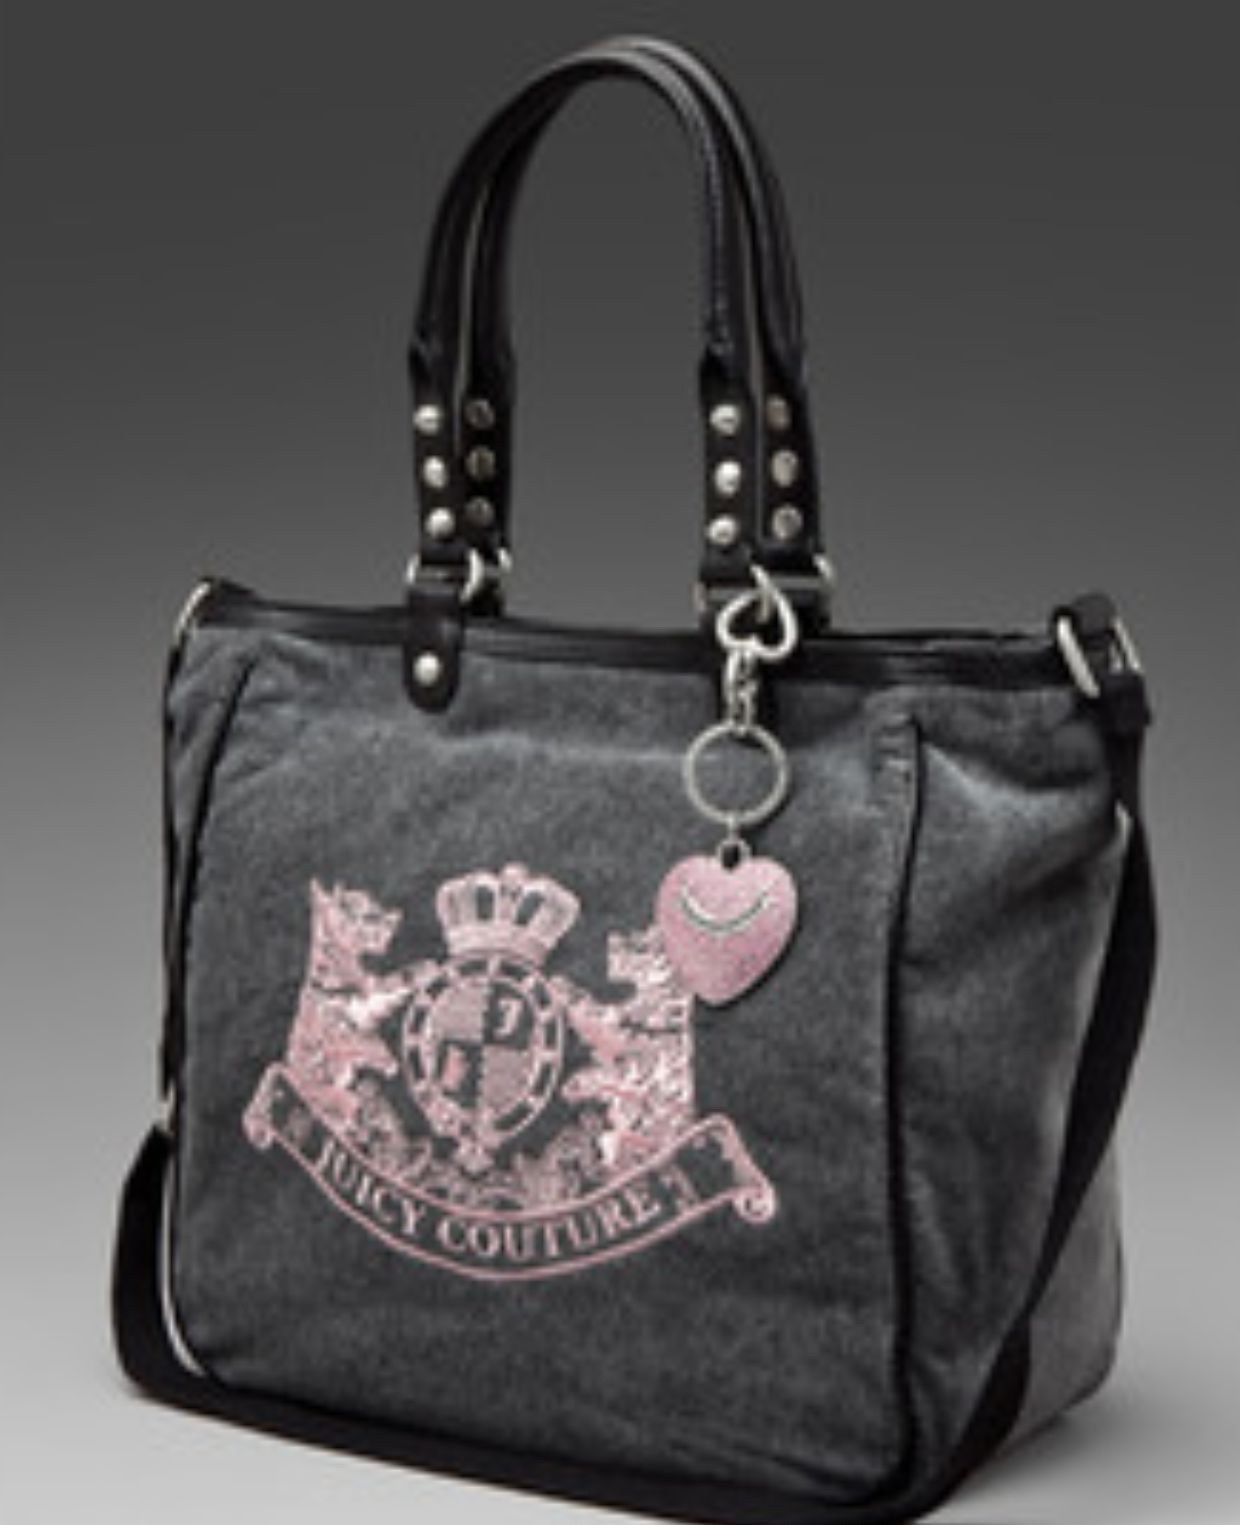 NEW Juicy Couture Velour Scottie Embroidery Heart Charm Bag Tote Nardles 2bba38777